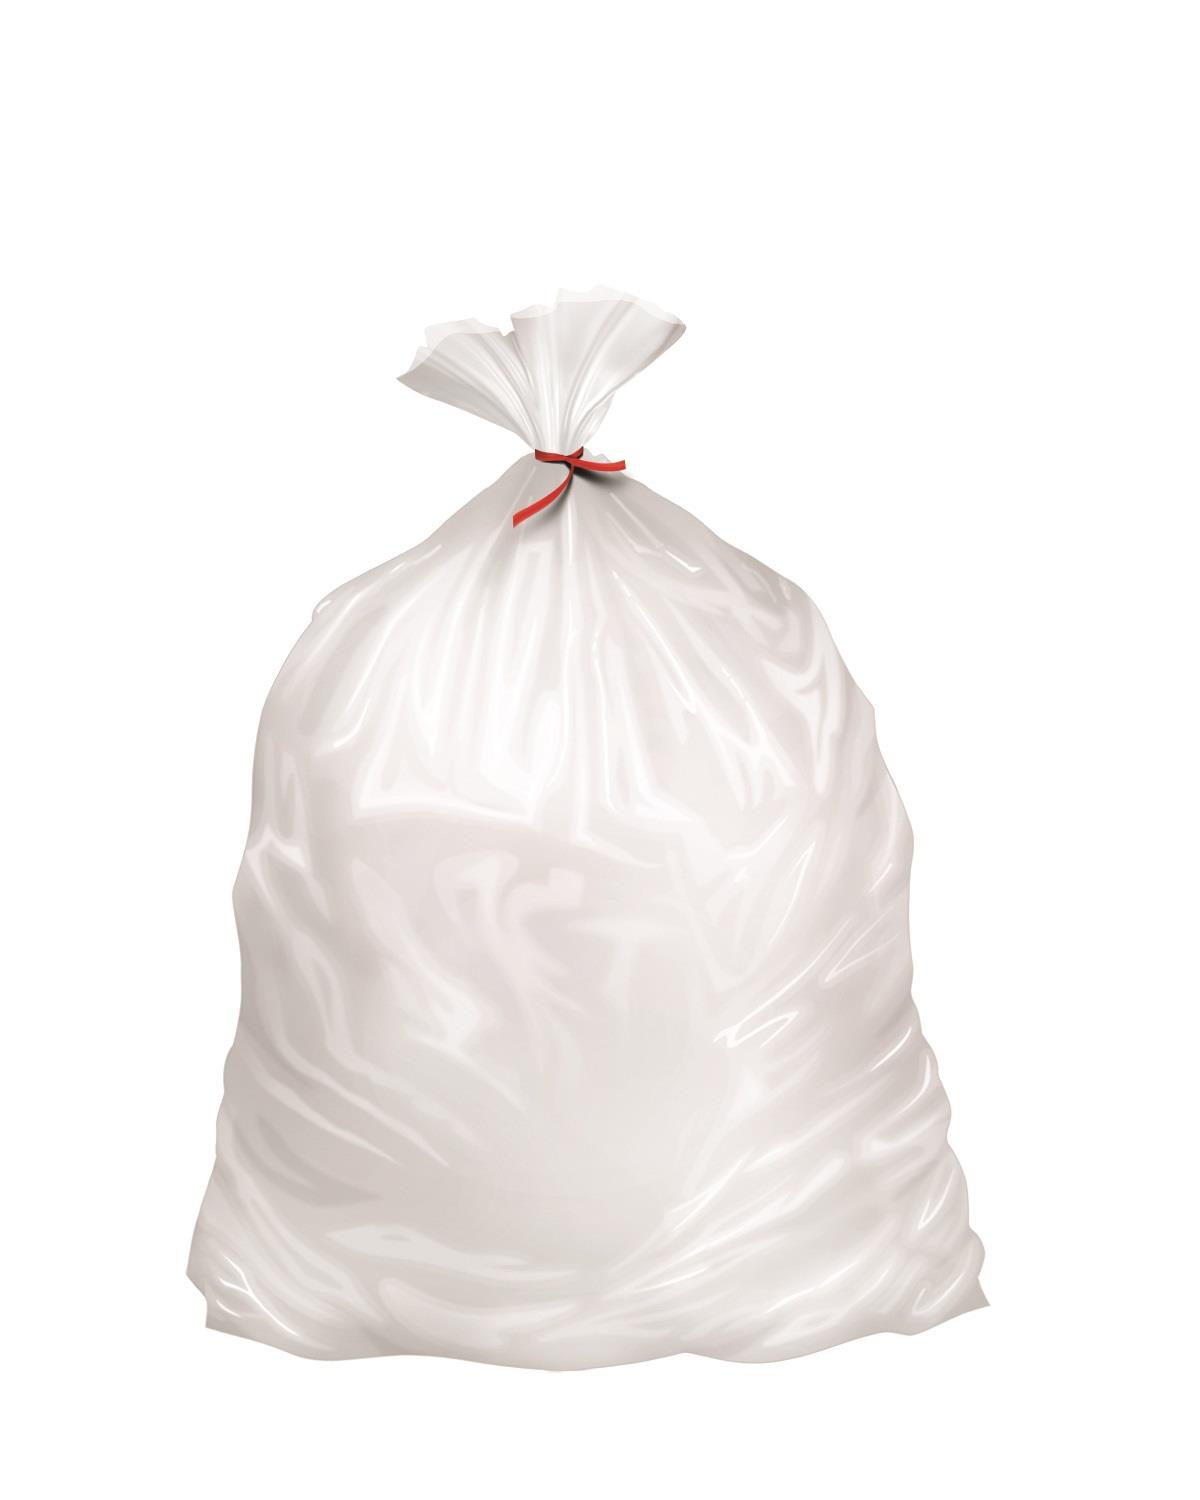 Trash Duty For Students With Special >> Trash Bags Light Duty 15 X 9 X 31 Clear 16 Gallon 250 Rl Jad